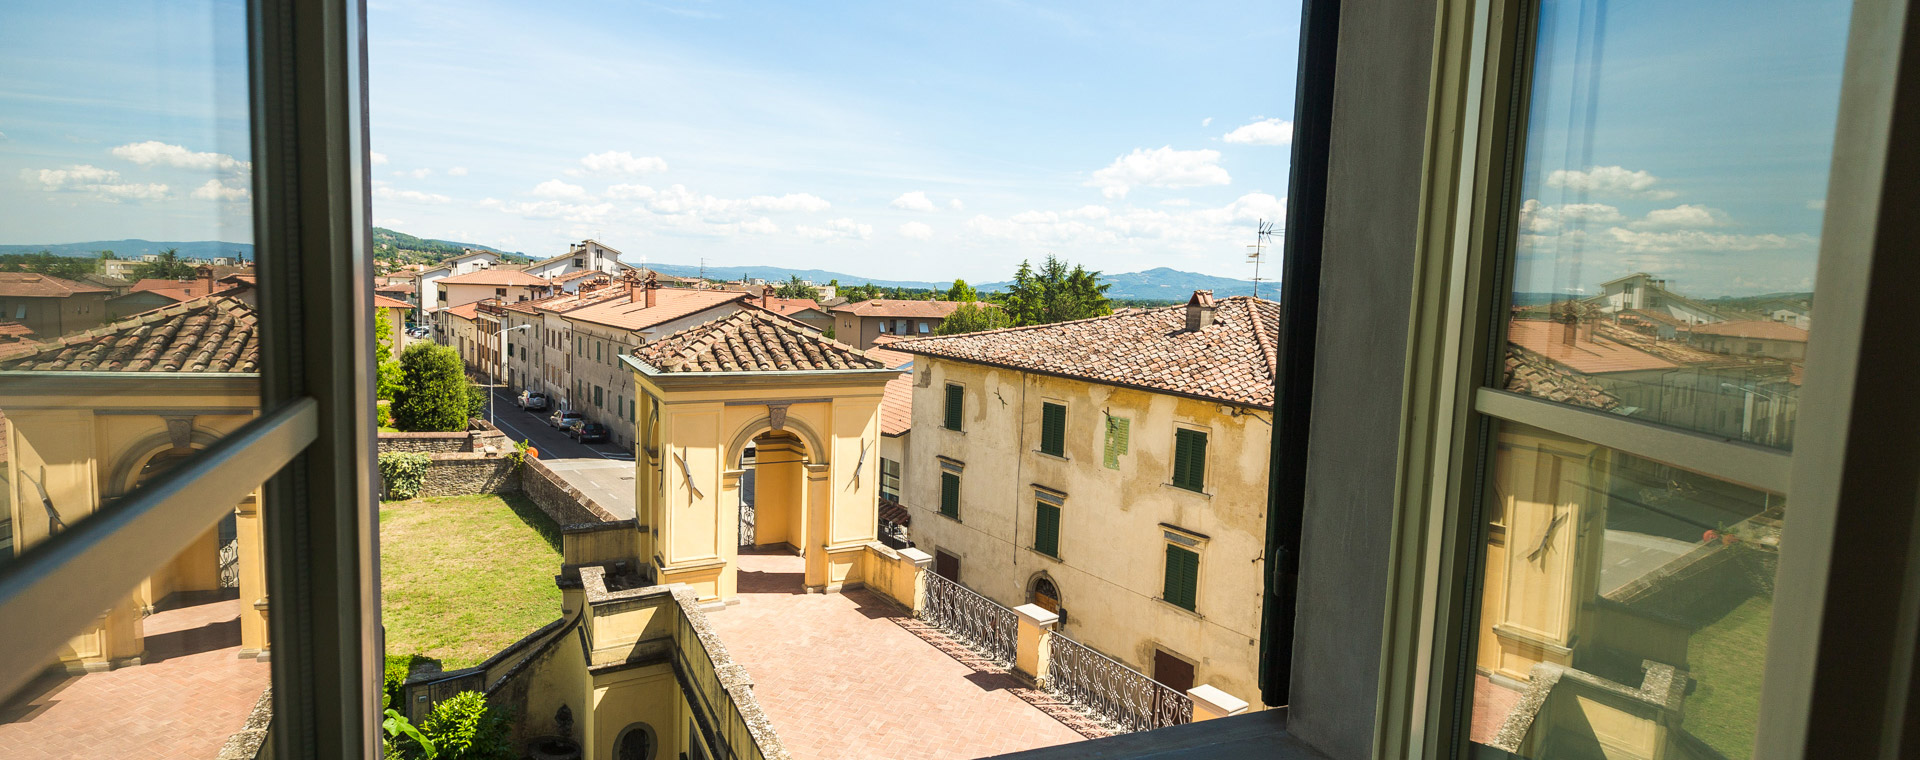 Tuscany historical residence now on sale